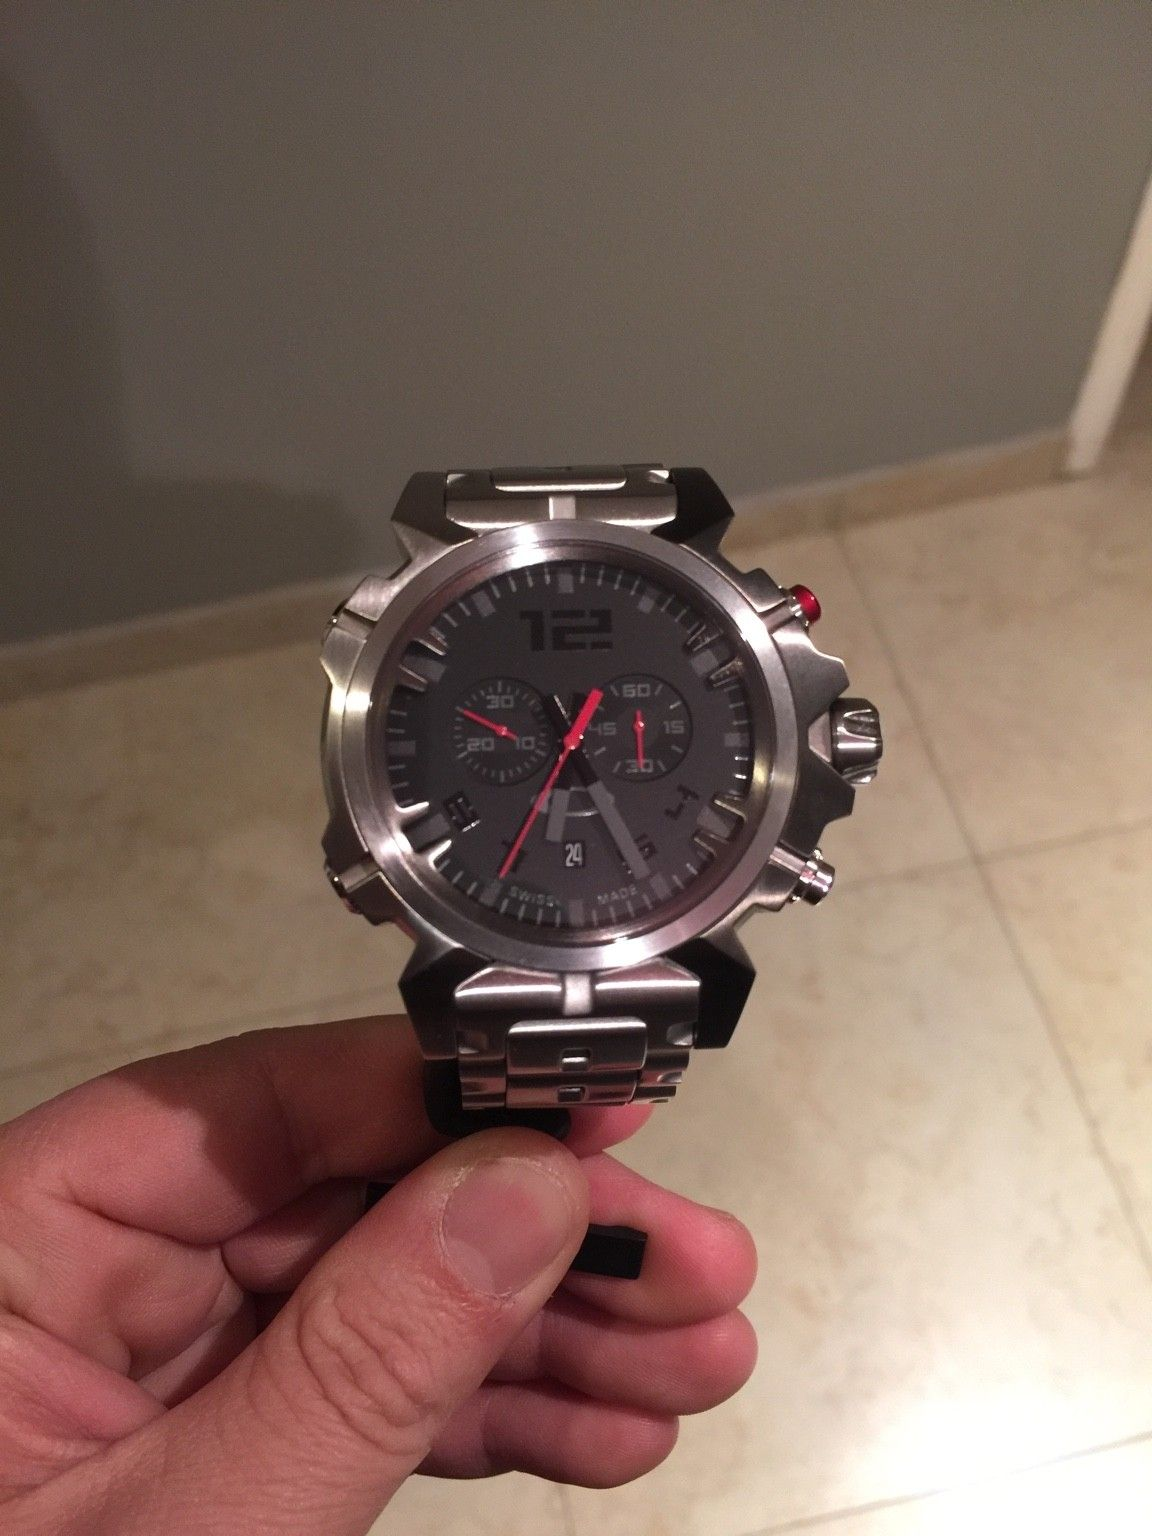 For sale Double tap watch complete - ImageUploadedByTapatalk1456883517.422218.jpg